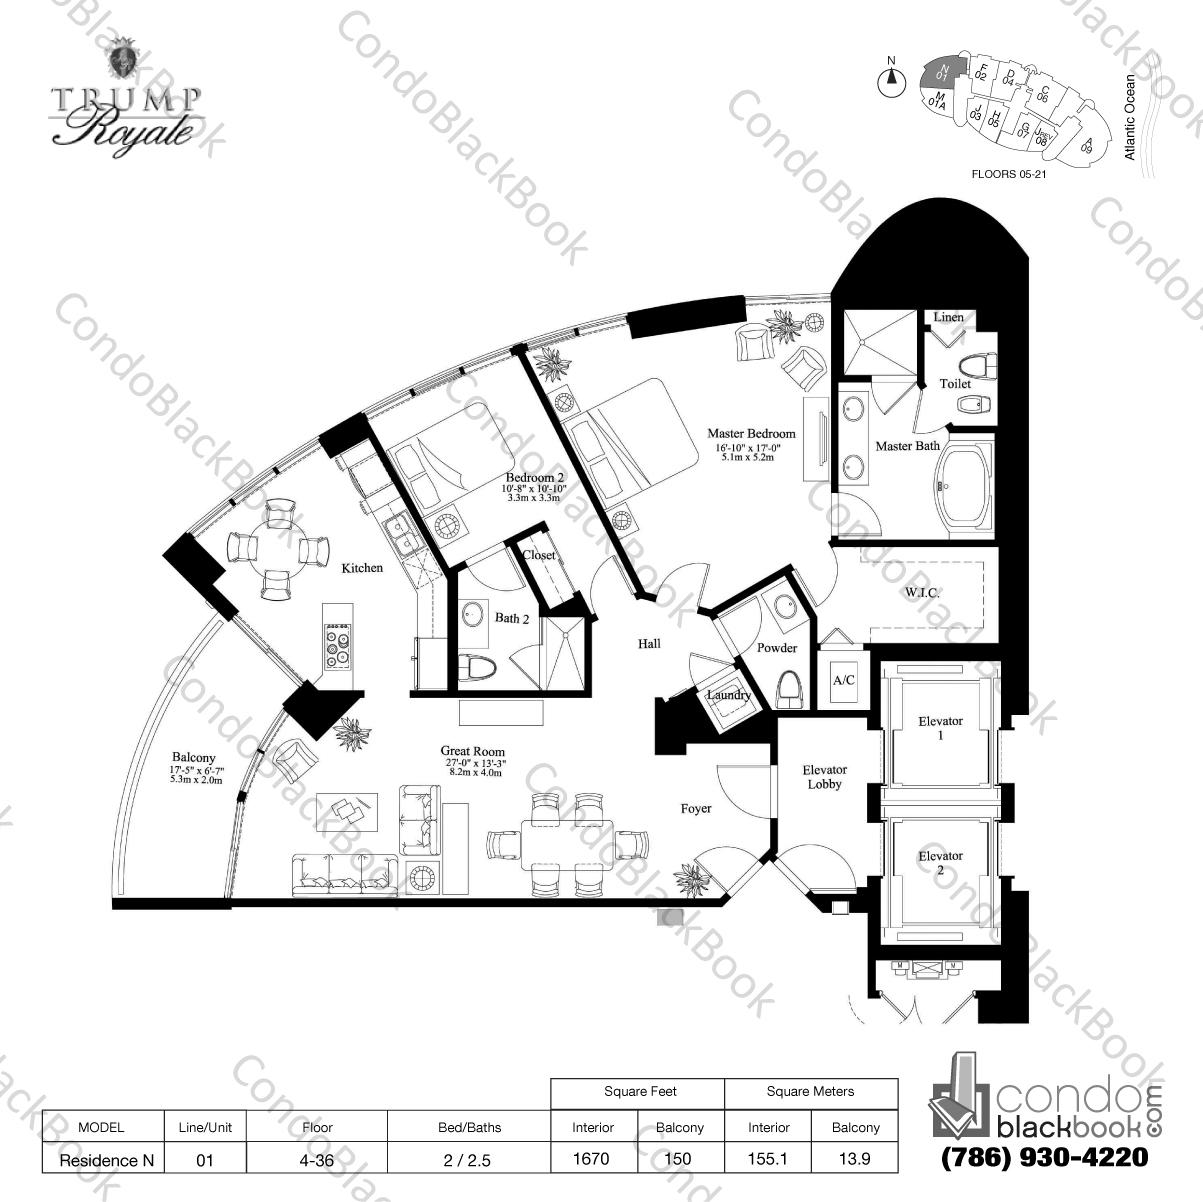 Floor plan for Trump Royale Sunny Isles Beach, model Residence N, line 01, 2 / 2.5 bedrooms, 1670 sq ft